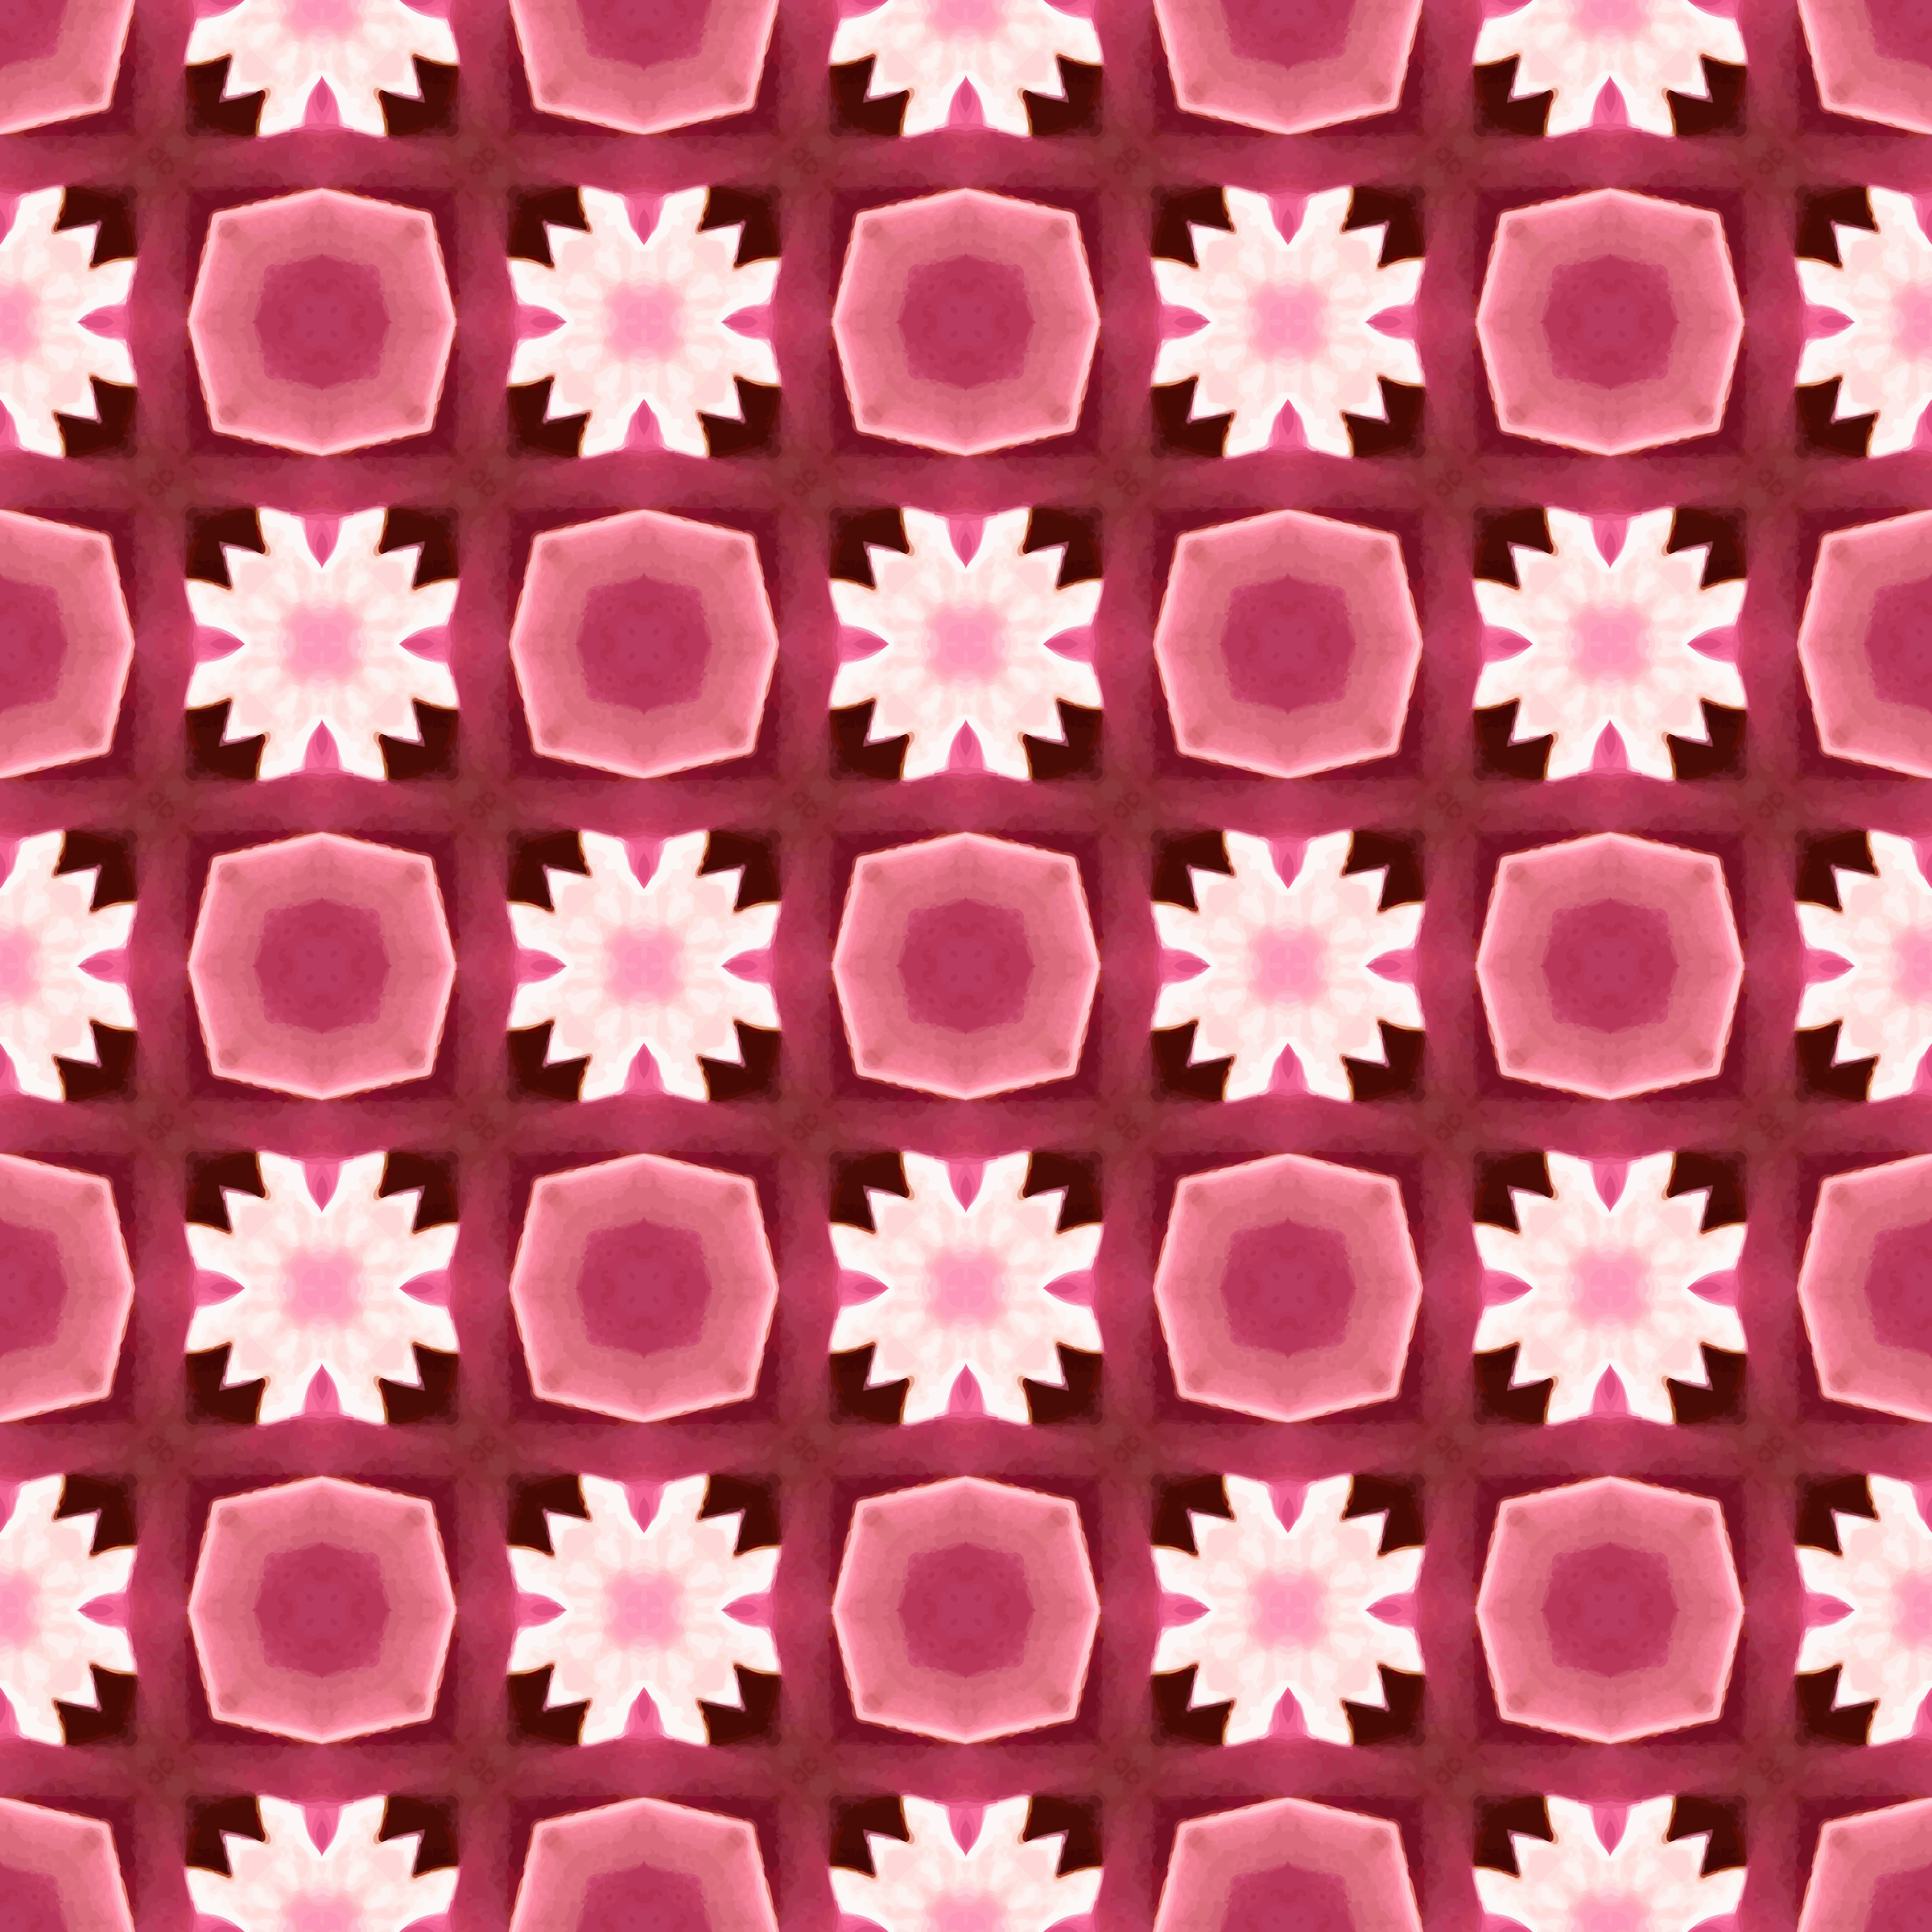 Background pattern 110 by Firkin